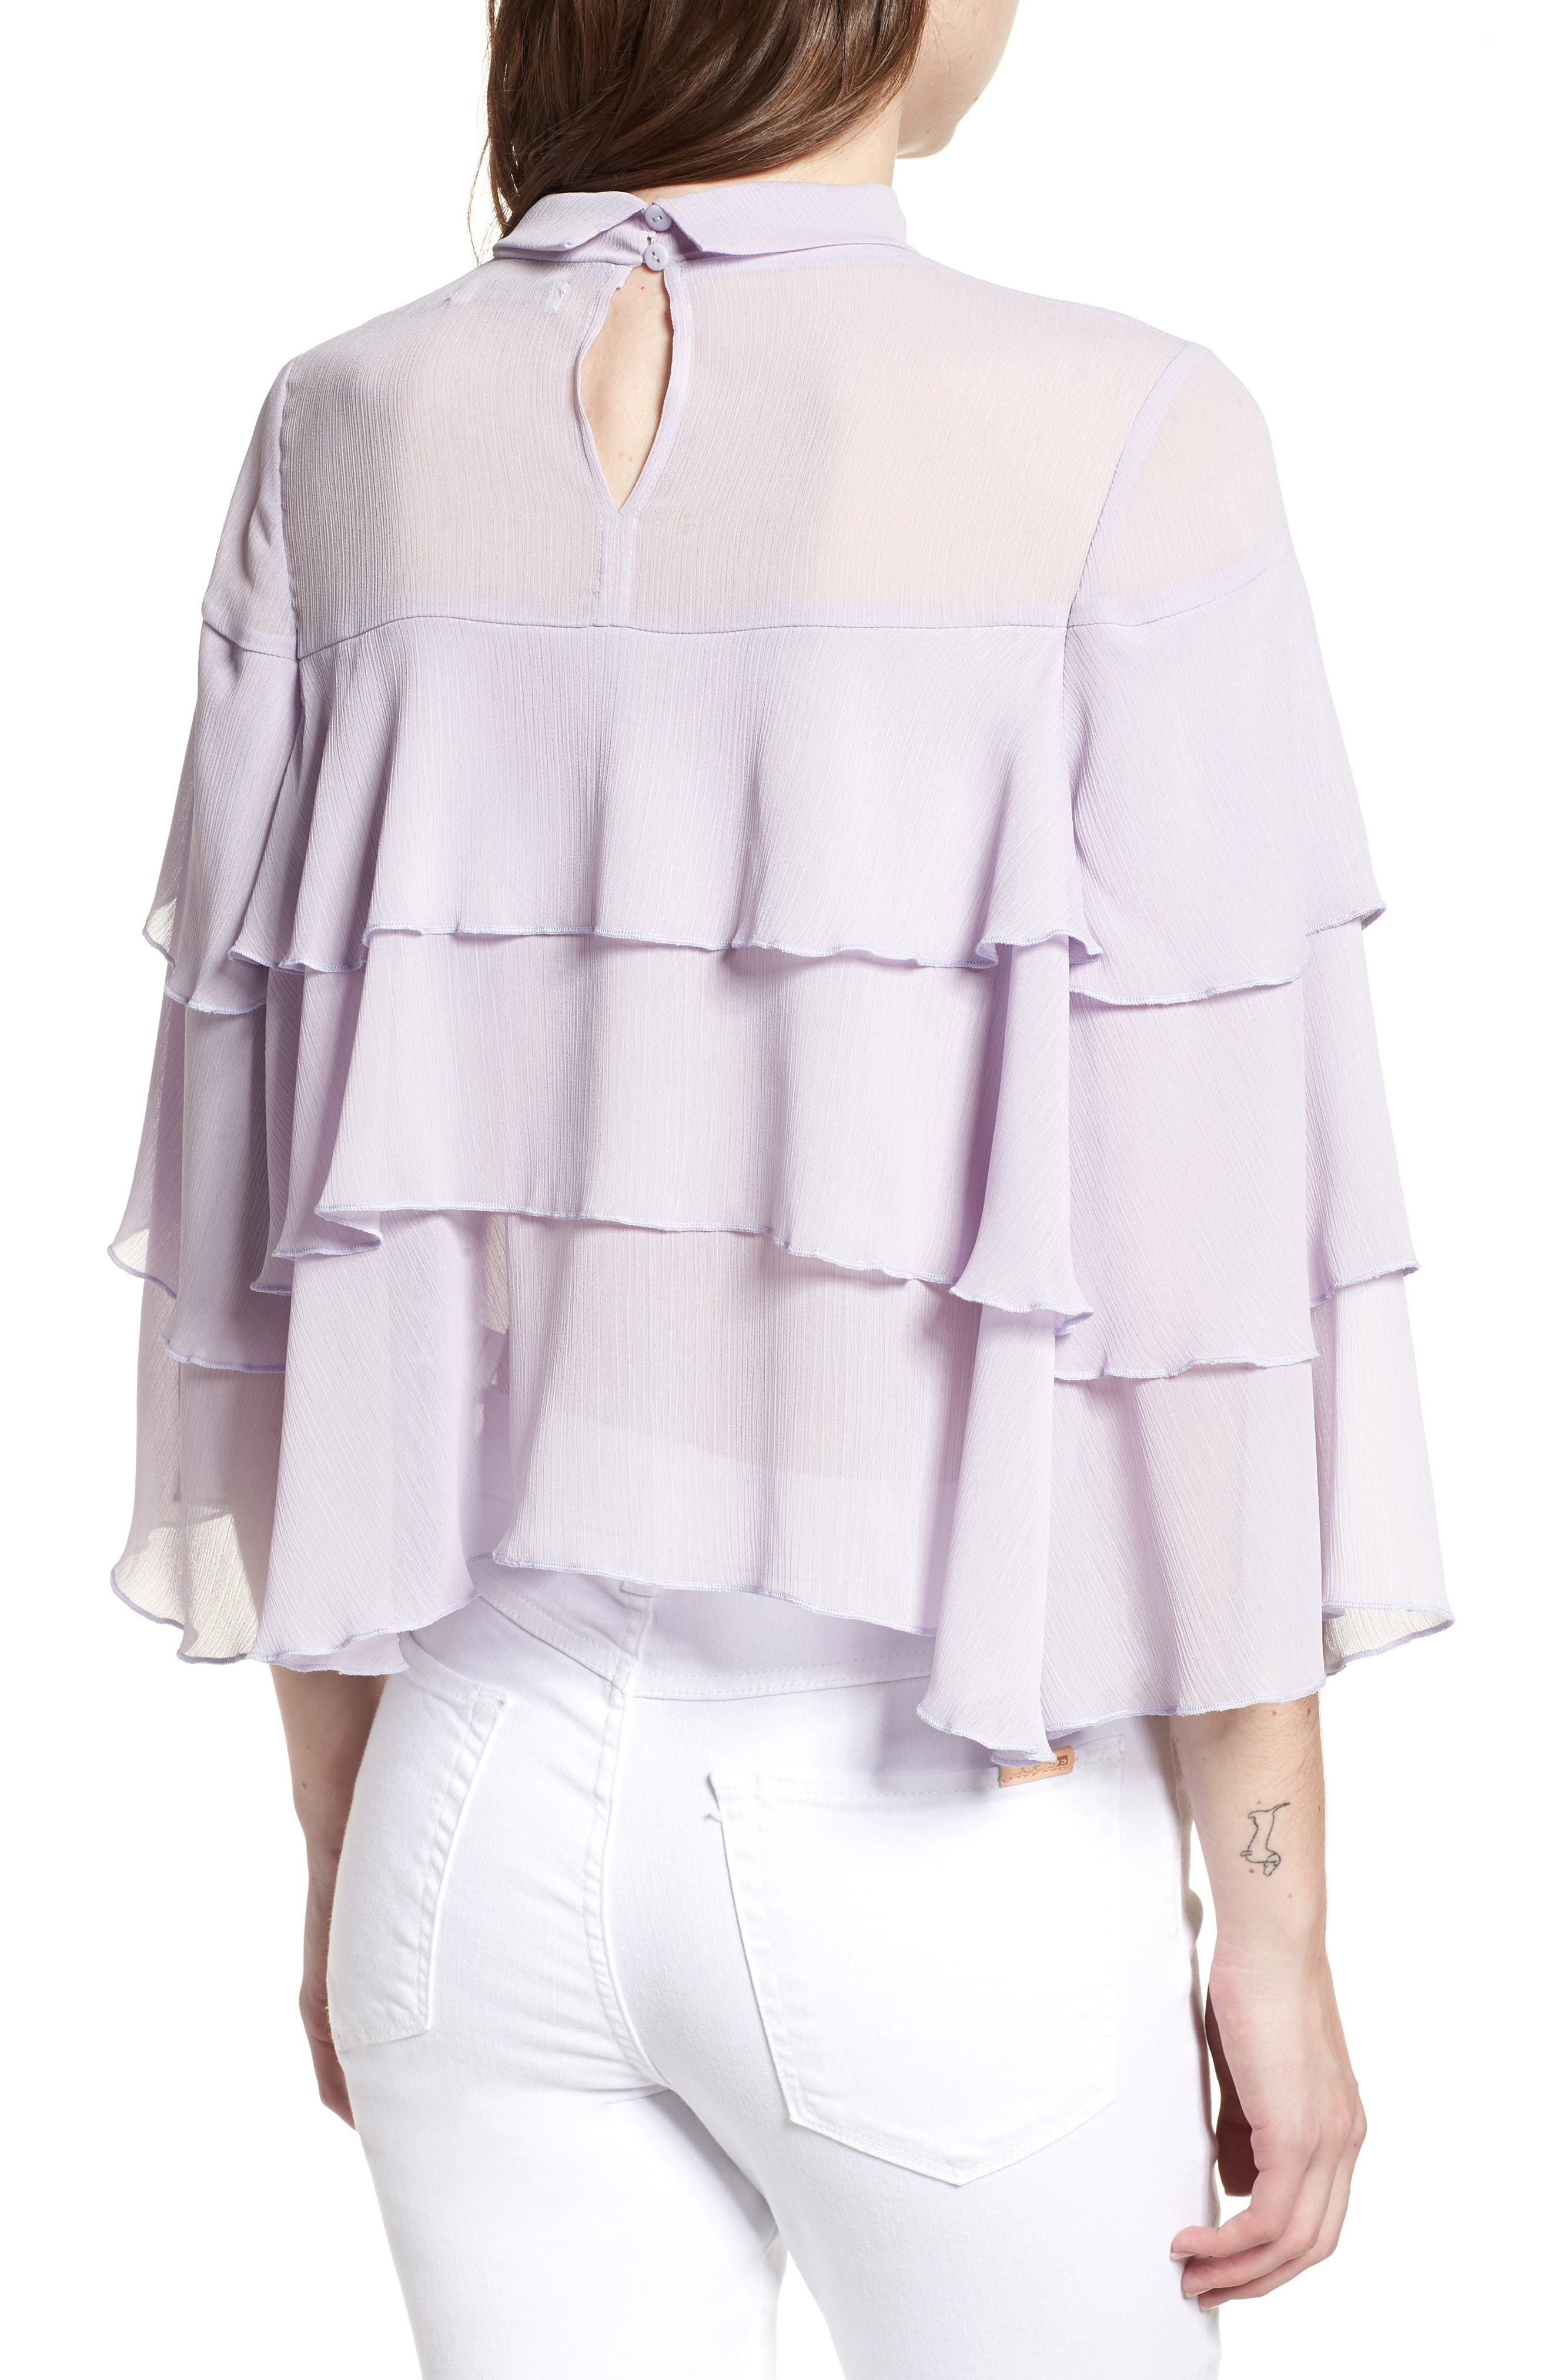 Bishop + Young Tiered Ruffle Blouse,                             Alternate thumbnail 2, color,                             LILAC